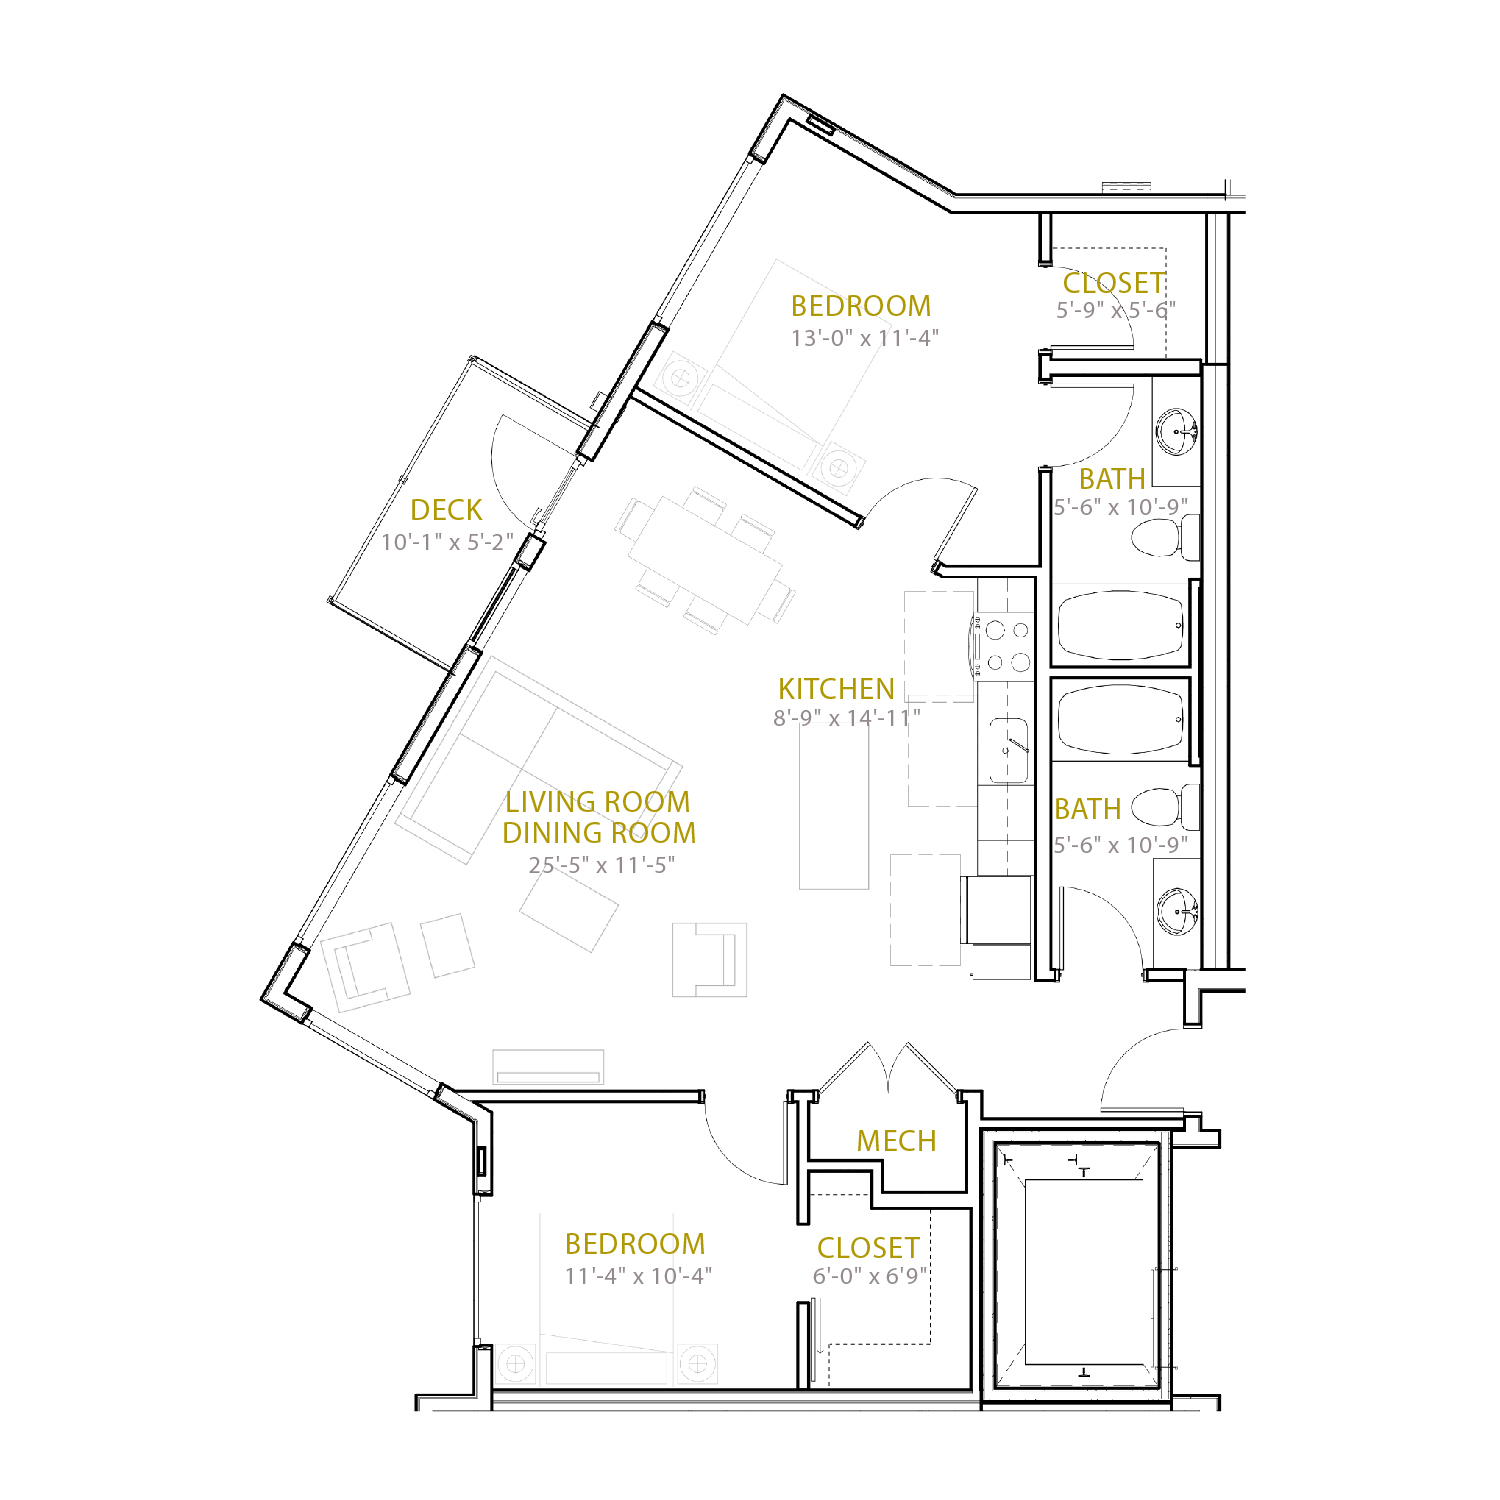 C Eight floor plan diagram. Two bedrooms, two bathrooms, an open kitchen and living area, and a deck.